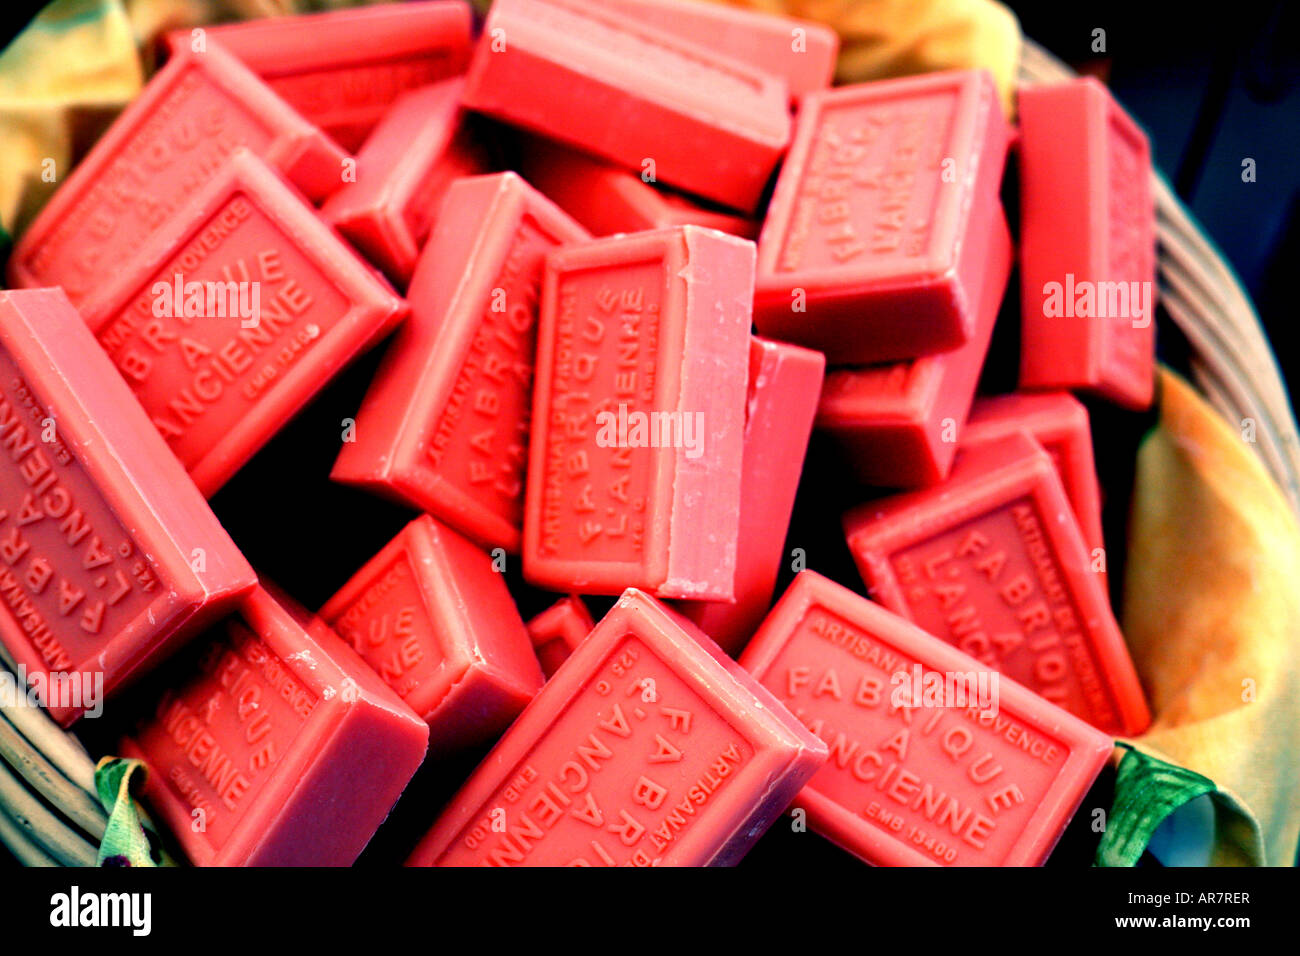 French soap on sale in market Stock Photo